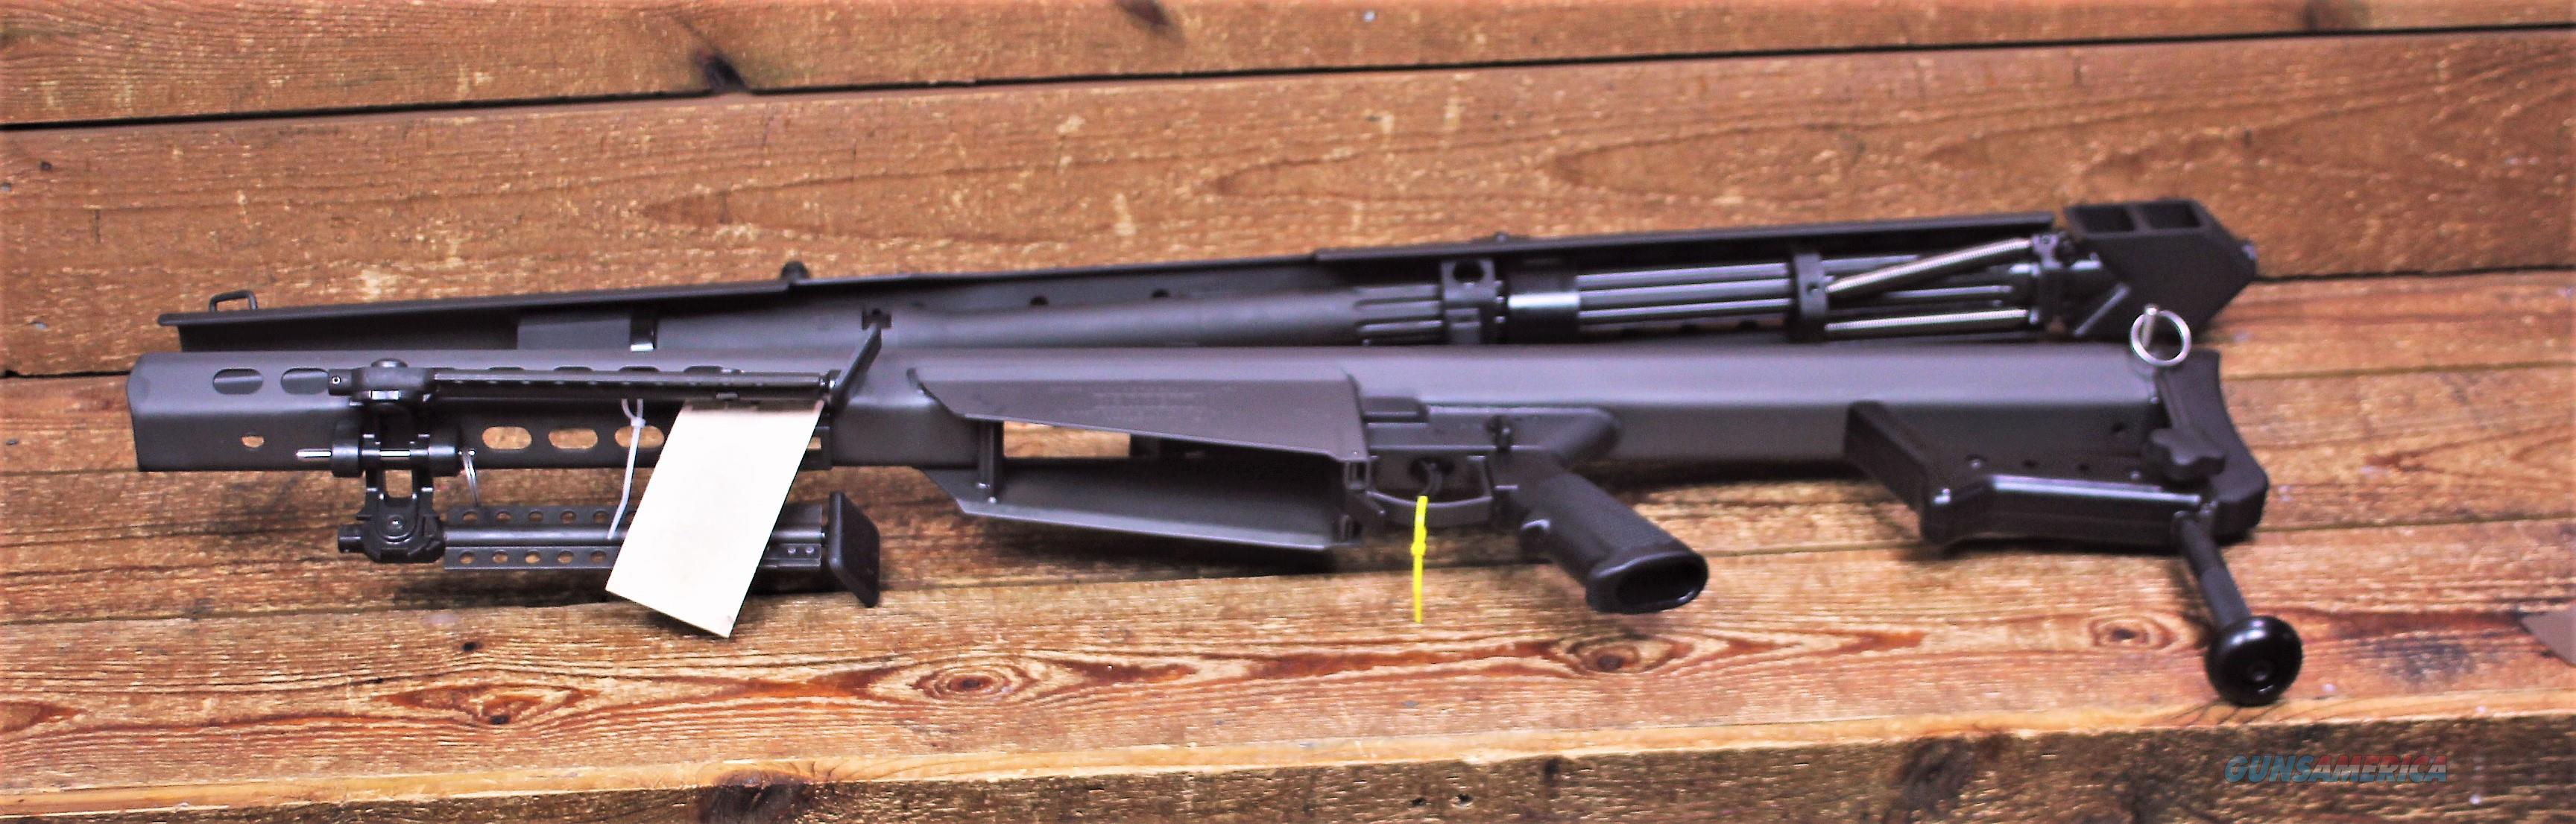 "Sale $499  EASY PAY  Barrett  10 round Made in the USA M82A1 SNIPER hunting target shooting Semi Auto Rifle .50 BMG 29"" Fluted Barrel long range 50BMG 10 Rounds competitions   Black Parkerized Carry Handle 13316  Guns > Rifles > Barrett Rifles"